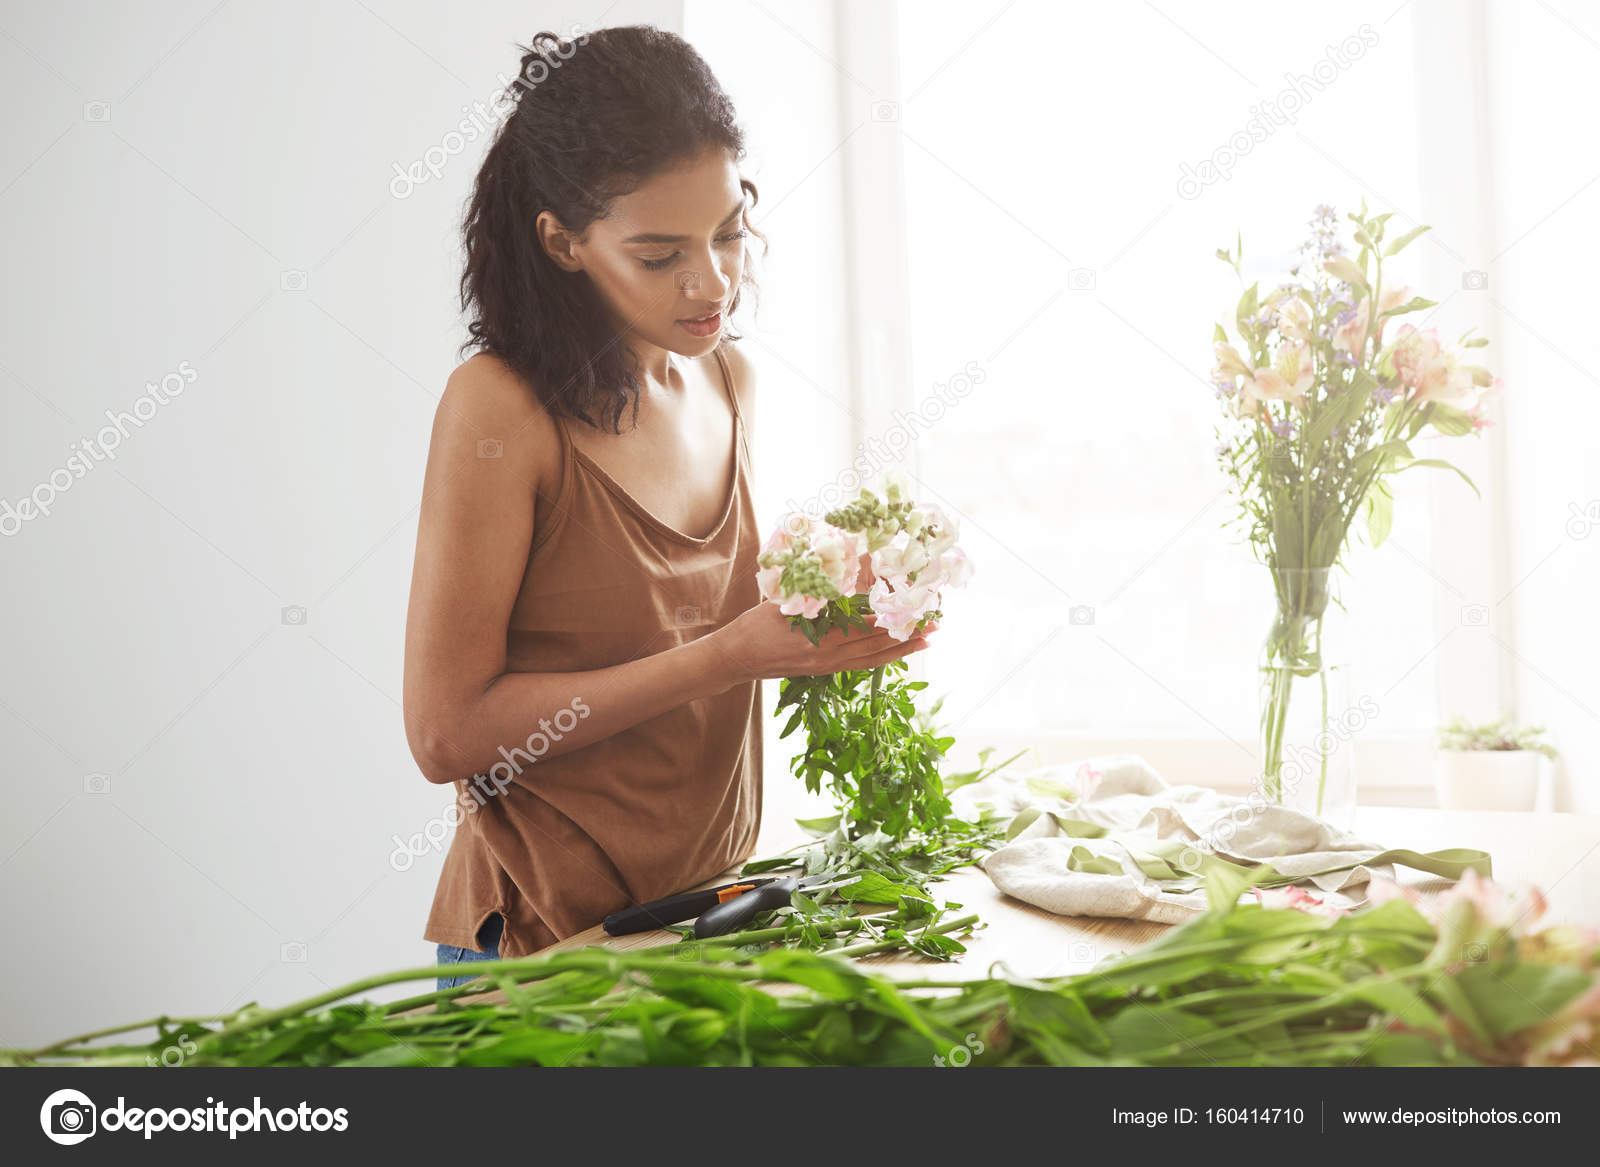 Attractive african girl florist smiling making bouquet of flowers at attractive african girl florist smiling making bouquet of flowers at workplace over white wall copy space nkavchenkoail fotoraf izmirmasajfo